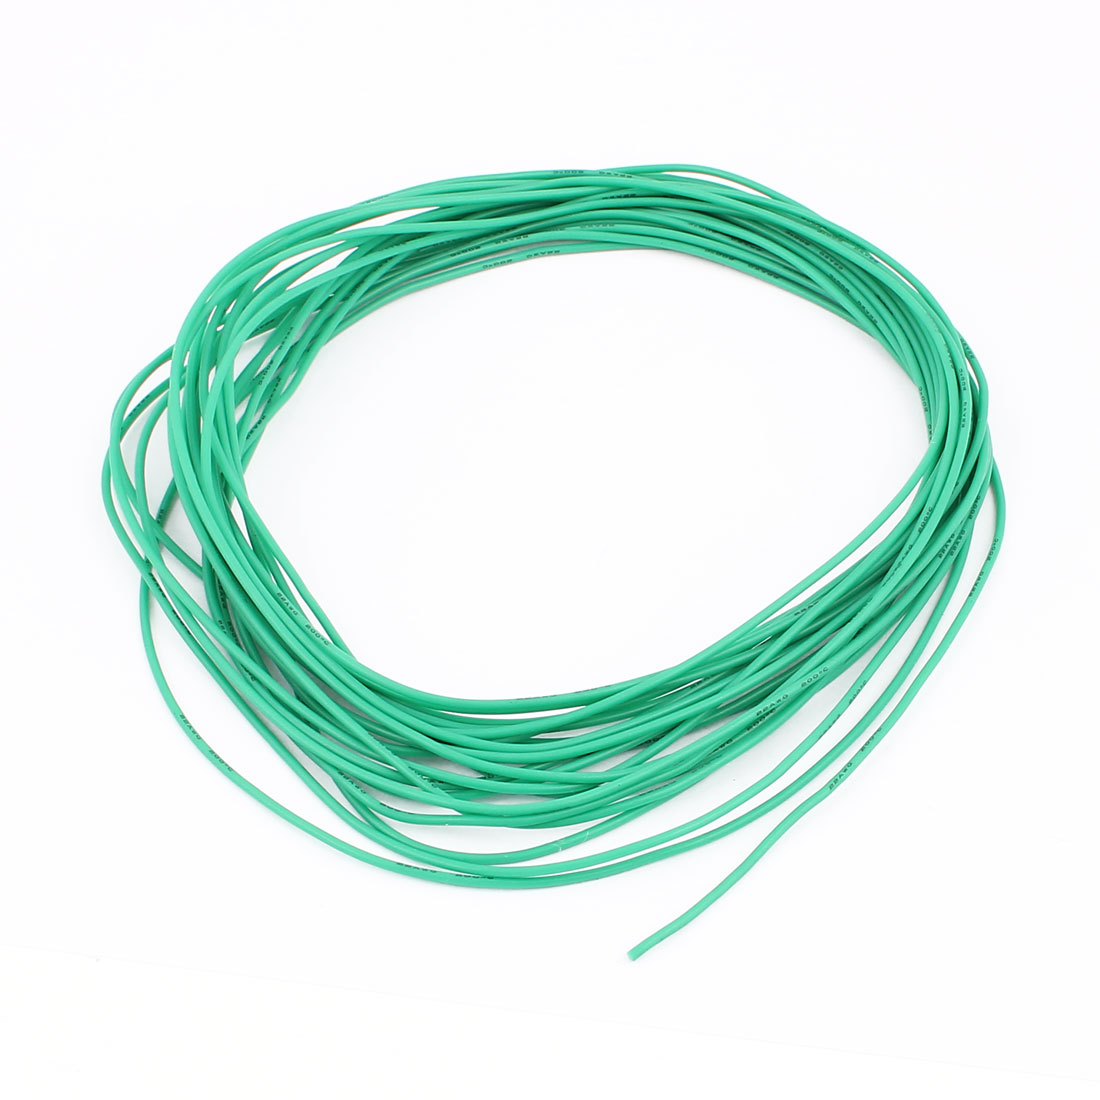 10M 22AWG Electric Copper Core Flexible Silicone Wire Cable Green